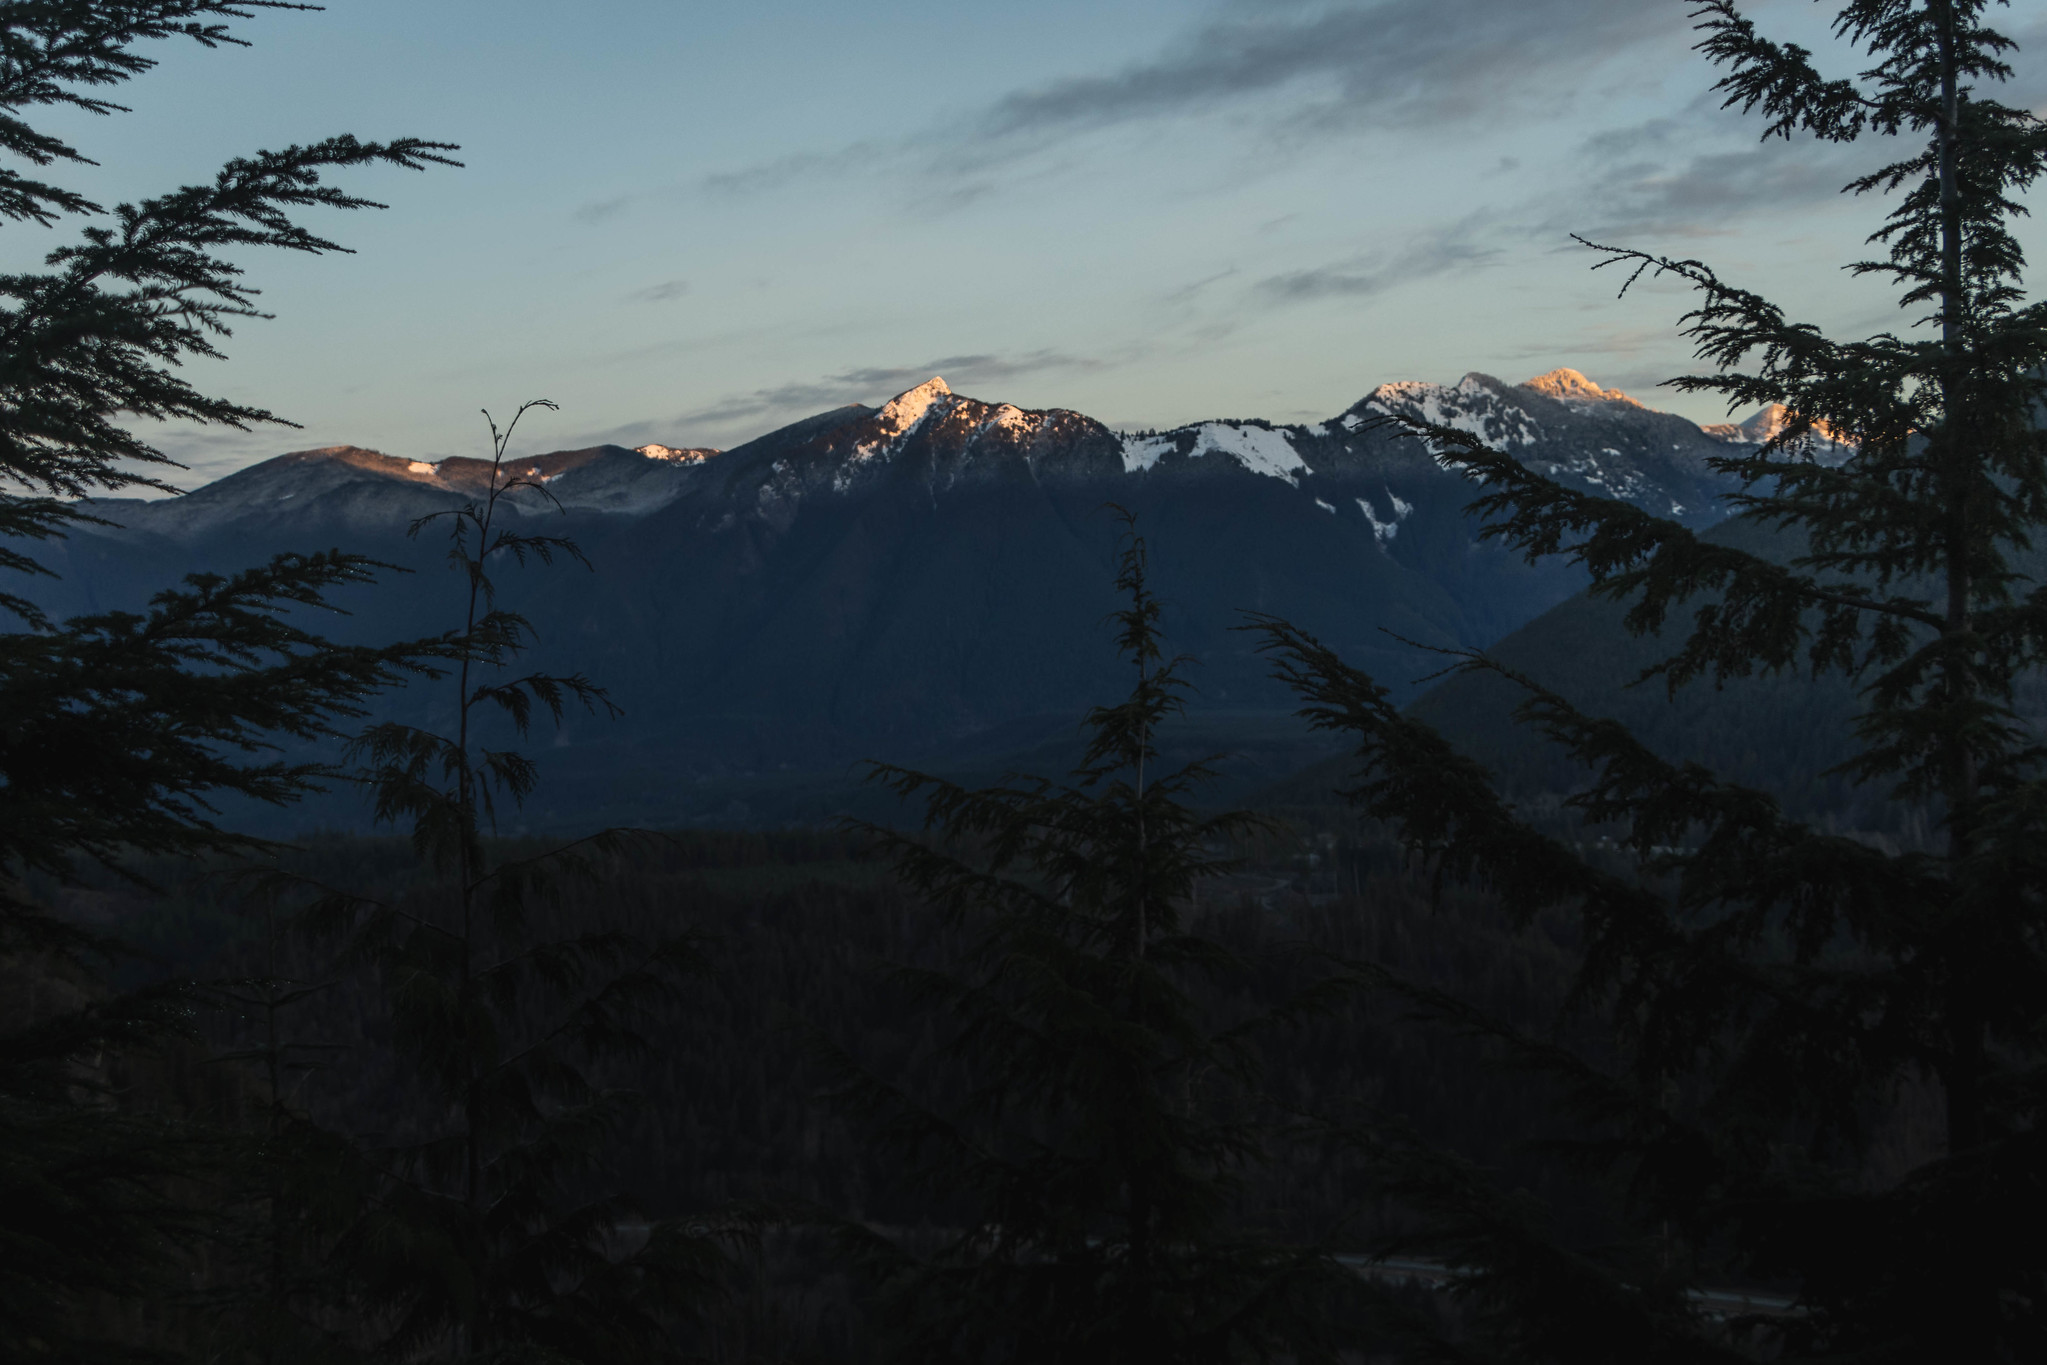 First light on Teneriffe